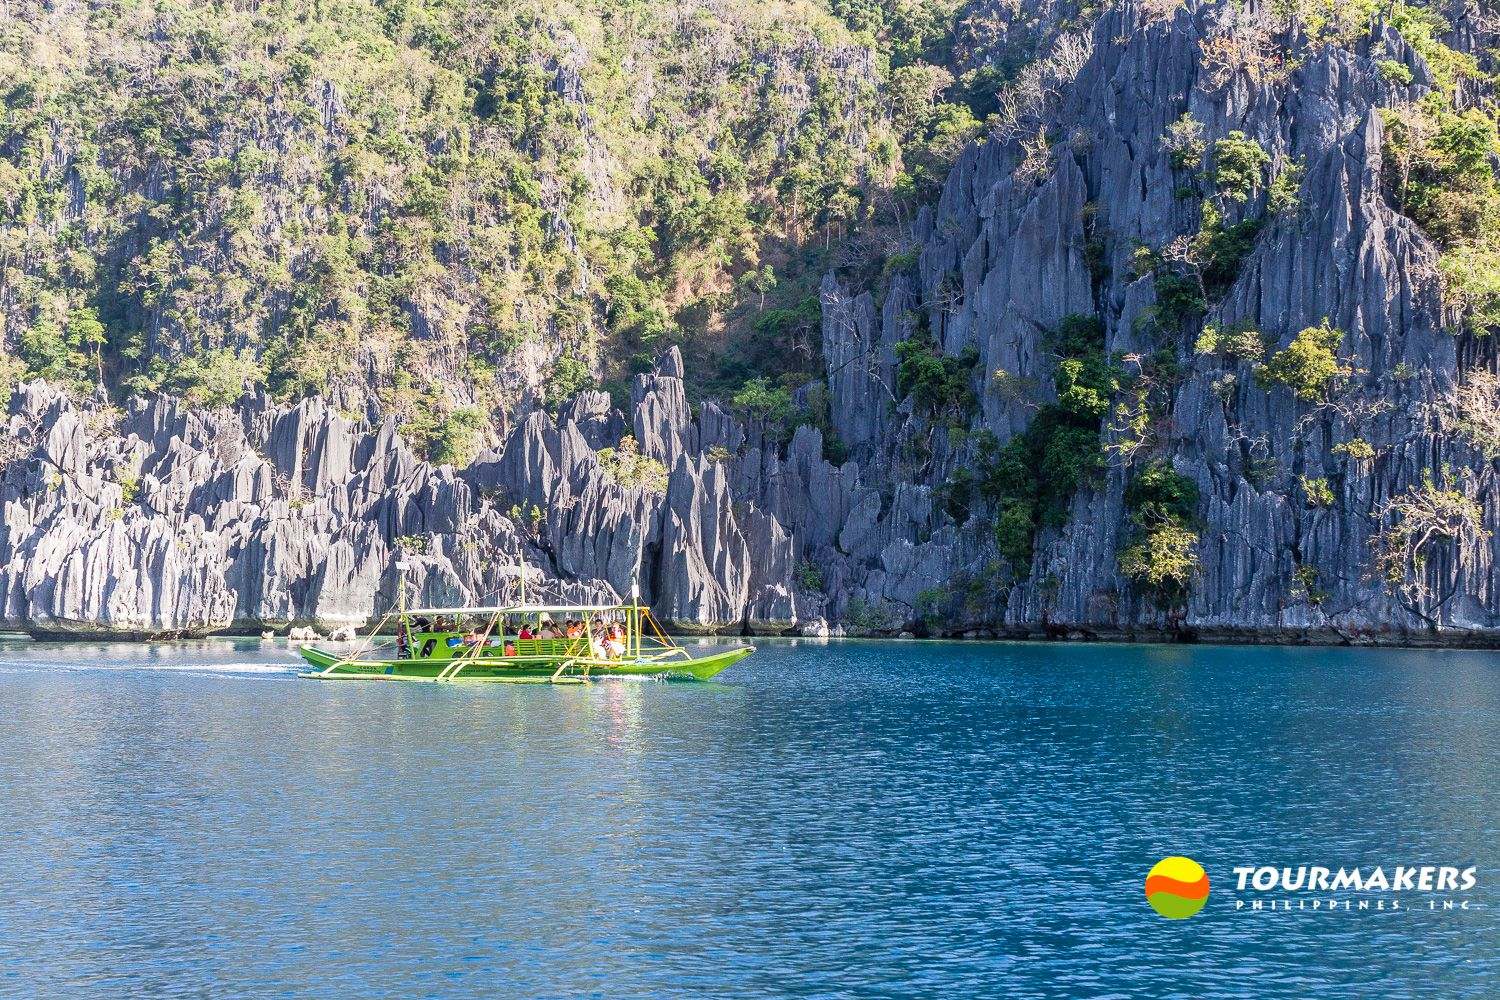 CORON GETAWAY (4D,3N) - TOURMAKERS PHILIPPINES, INC.